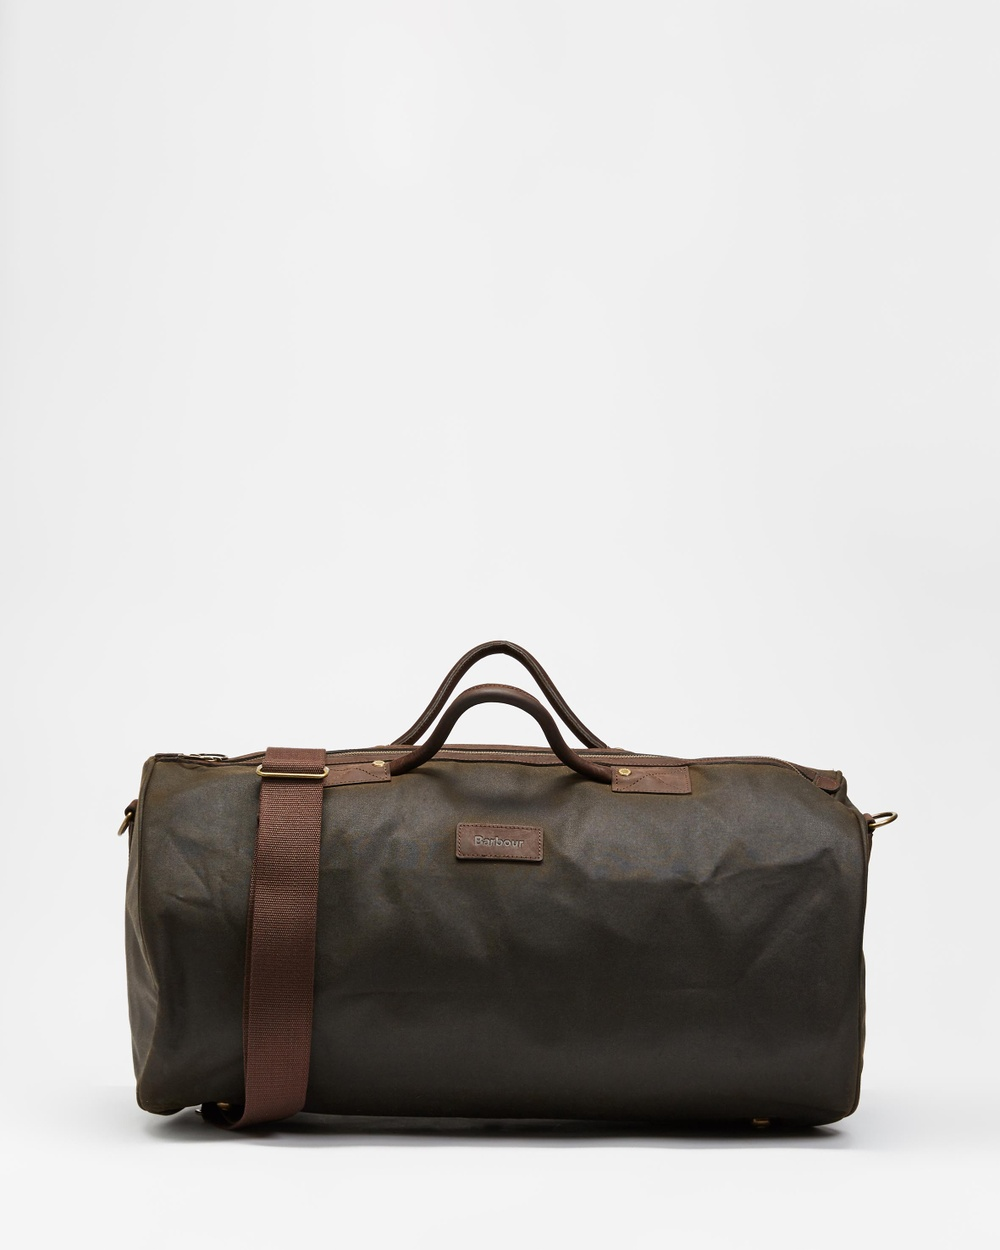 Barbour Wax Holdall Duffle Bags Olive